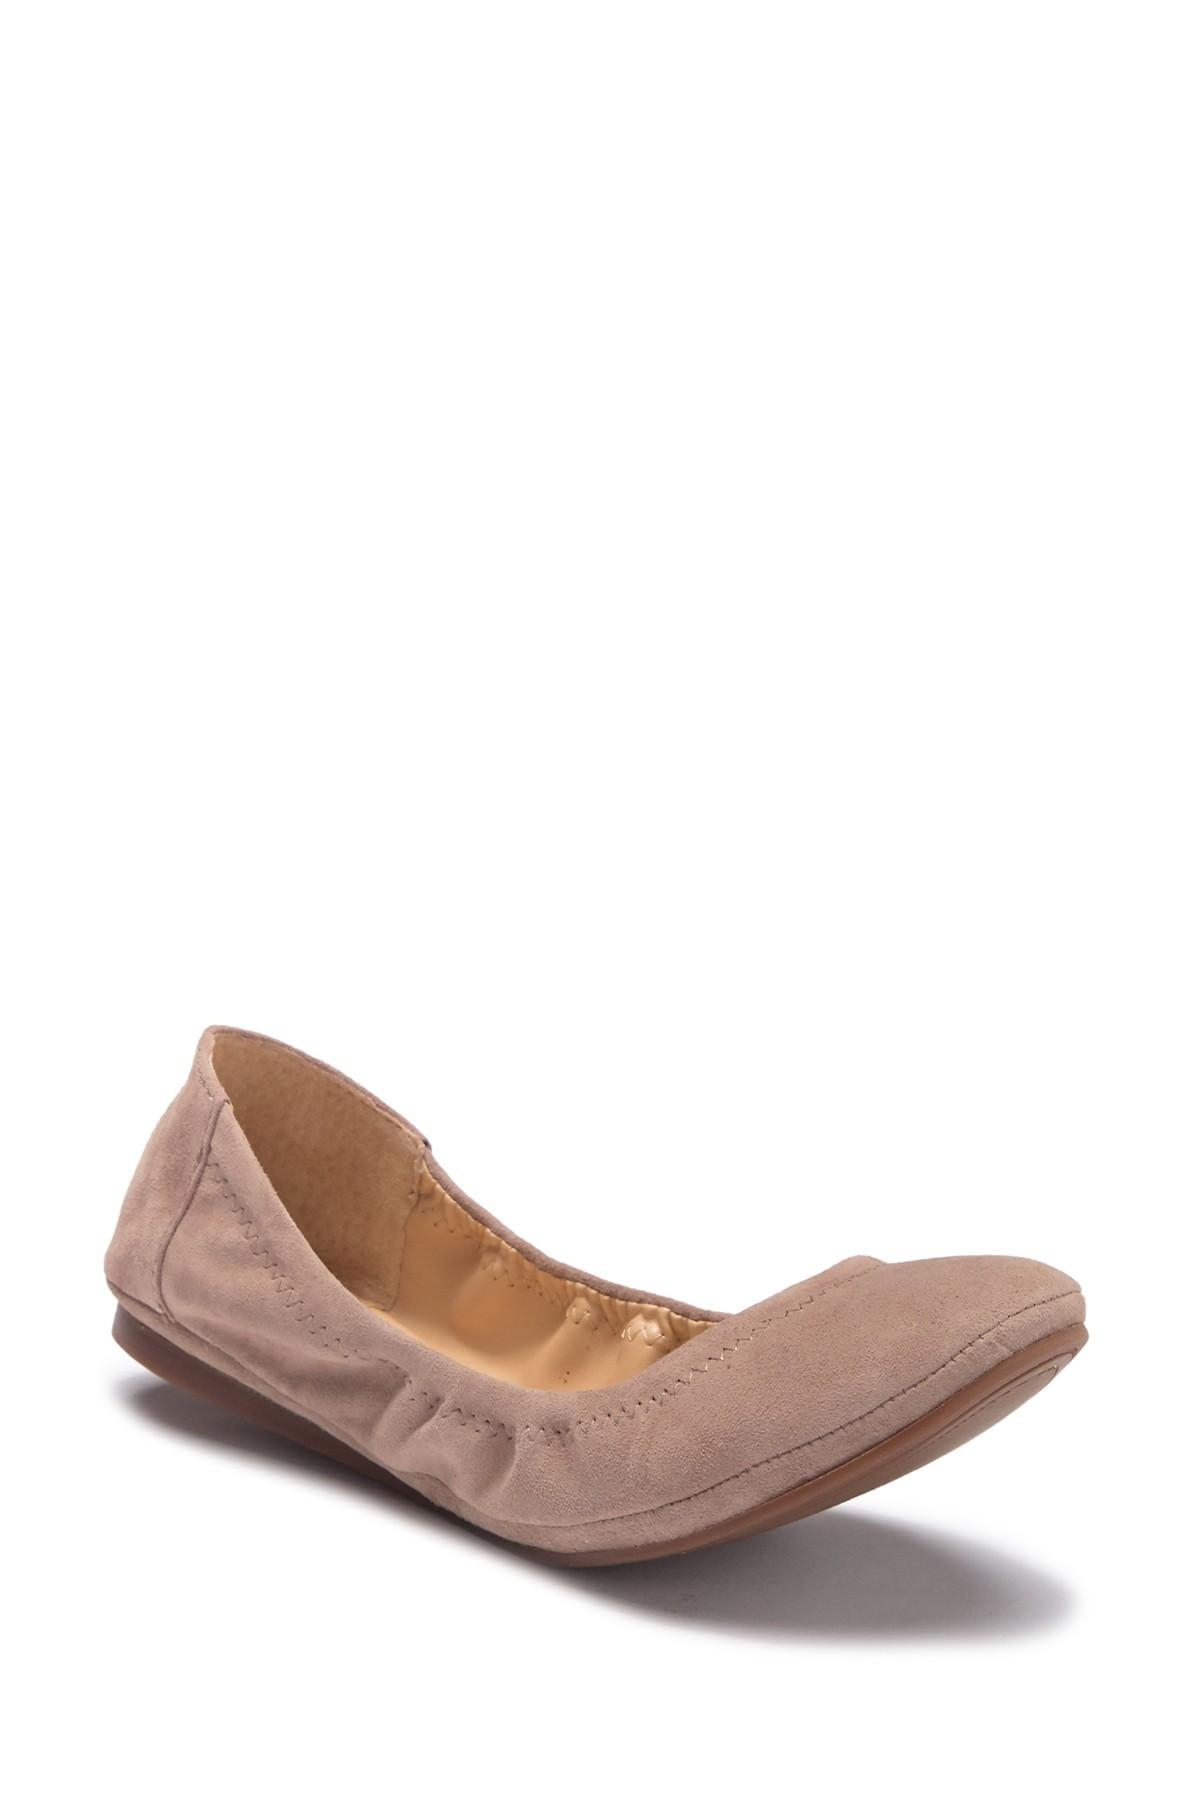 d6ee385f5f0 Lyst - Vince Camuto Ellen Round Toe Leather Flat in Brown